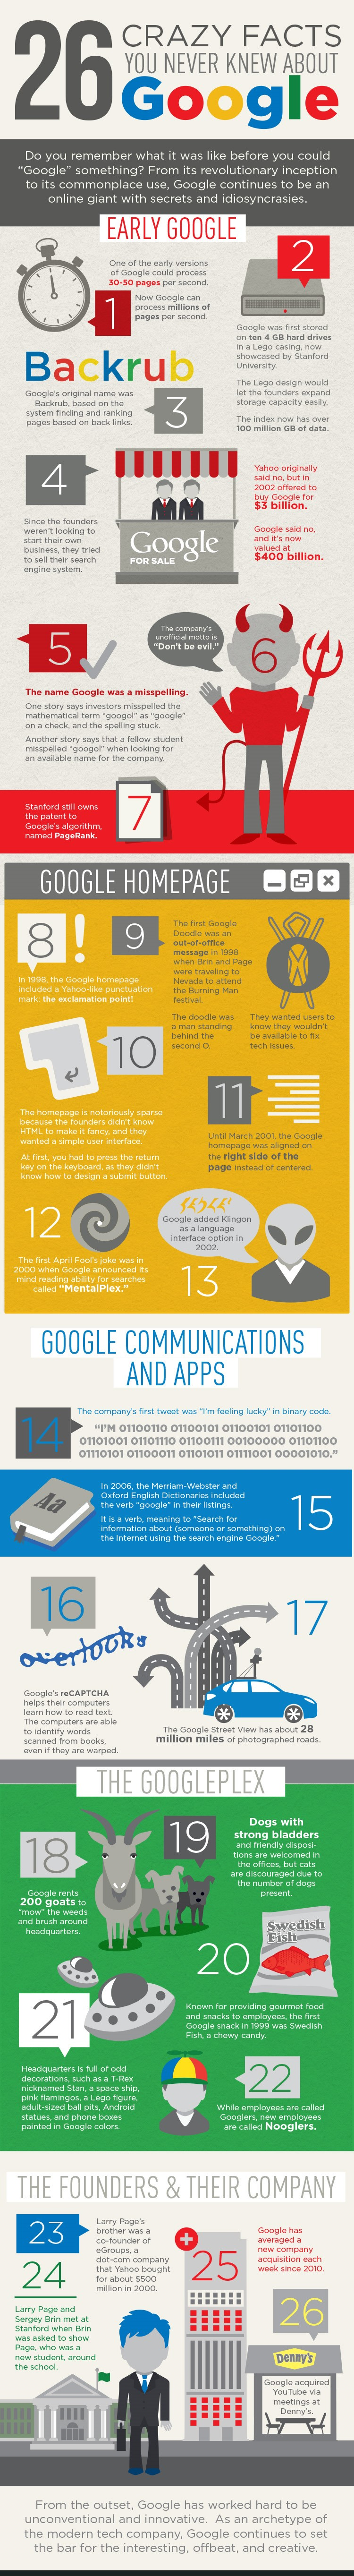 26 Crazy Facts about google